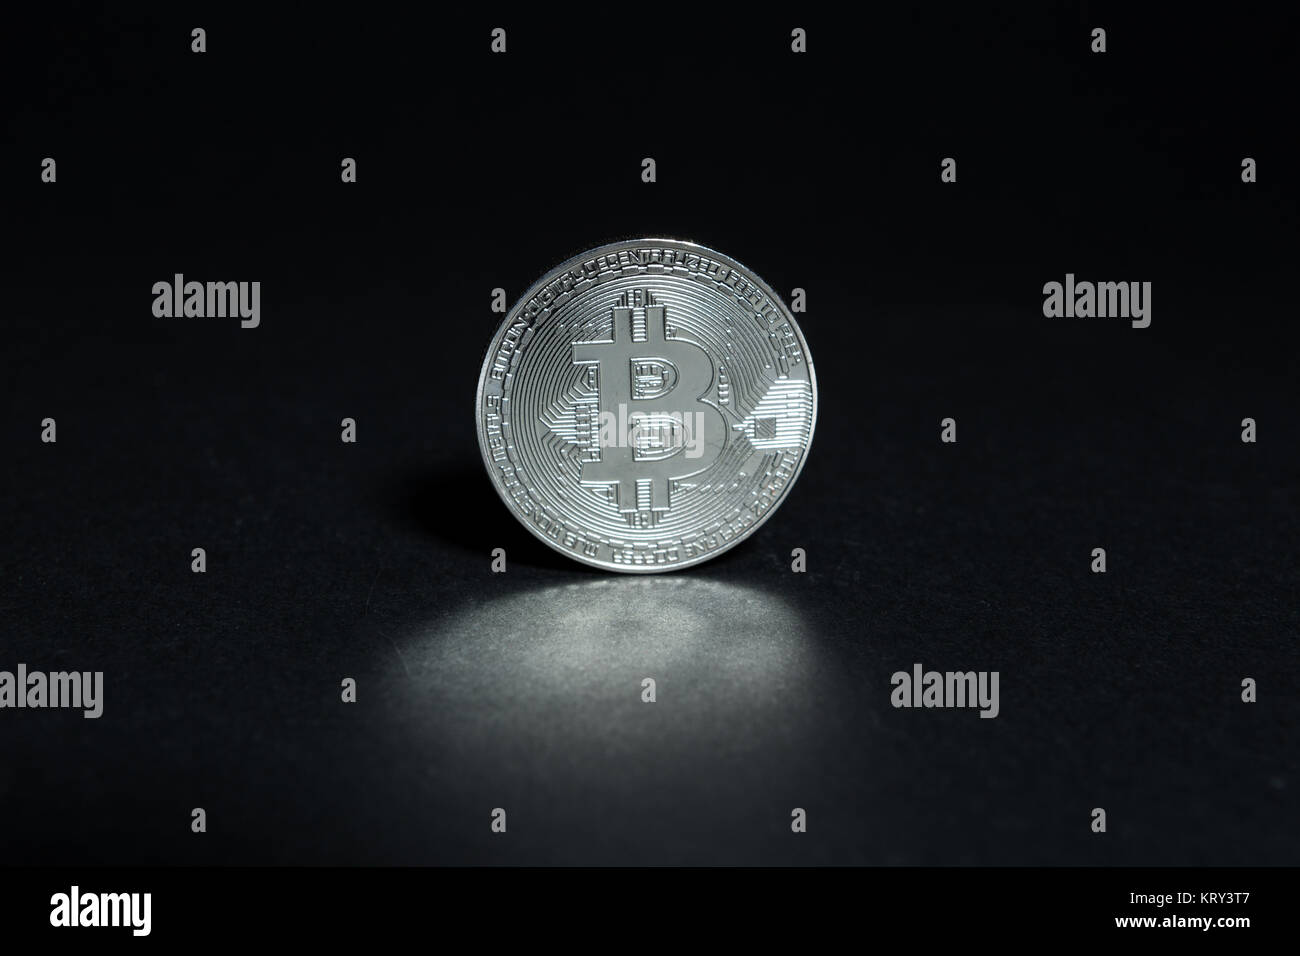 One single silver bitcoin on dark black background with copy text space area - Stock Image